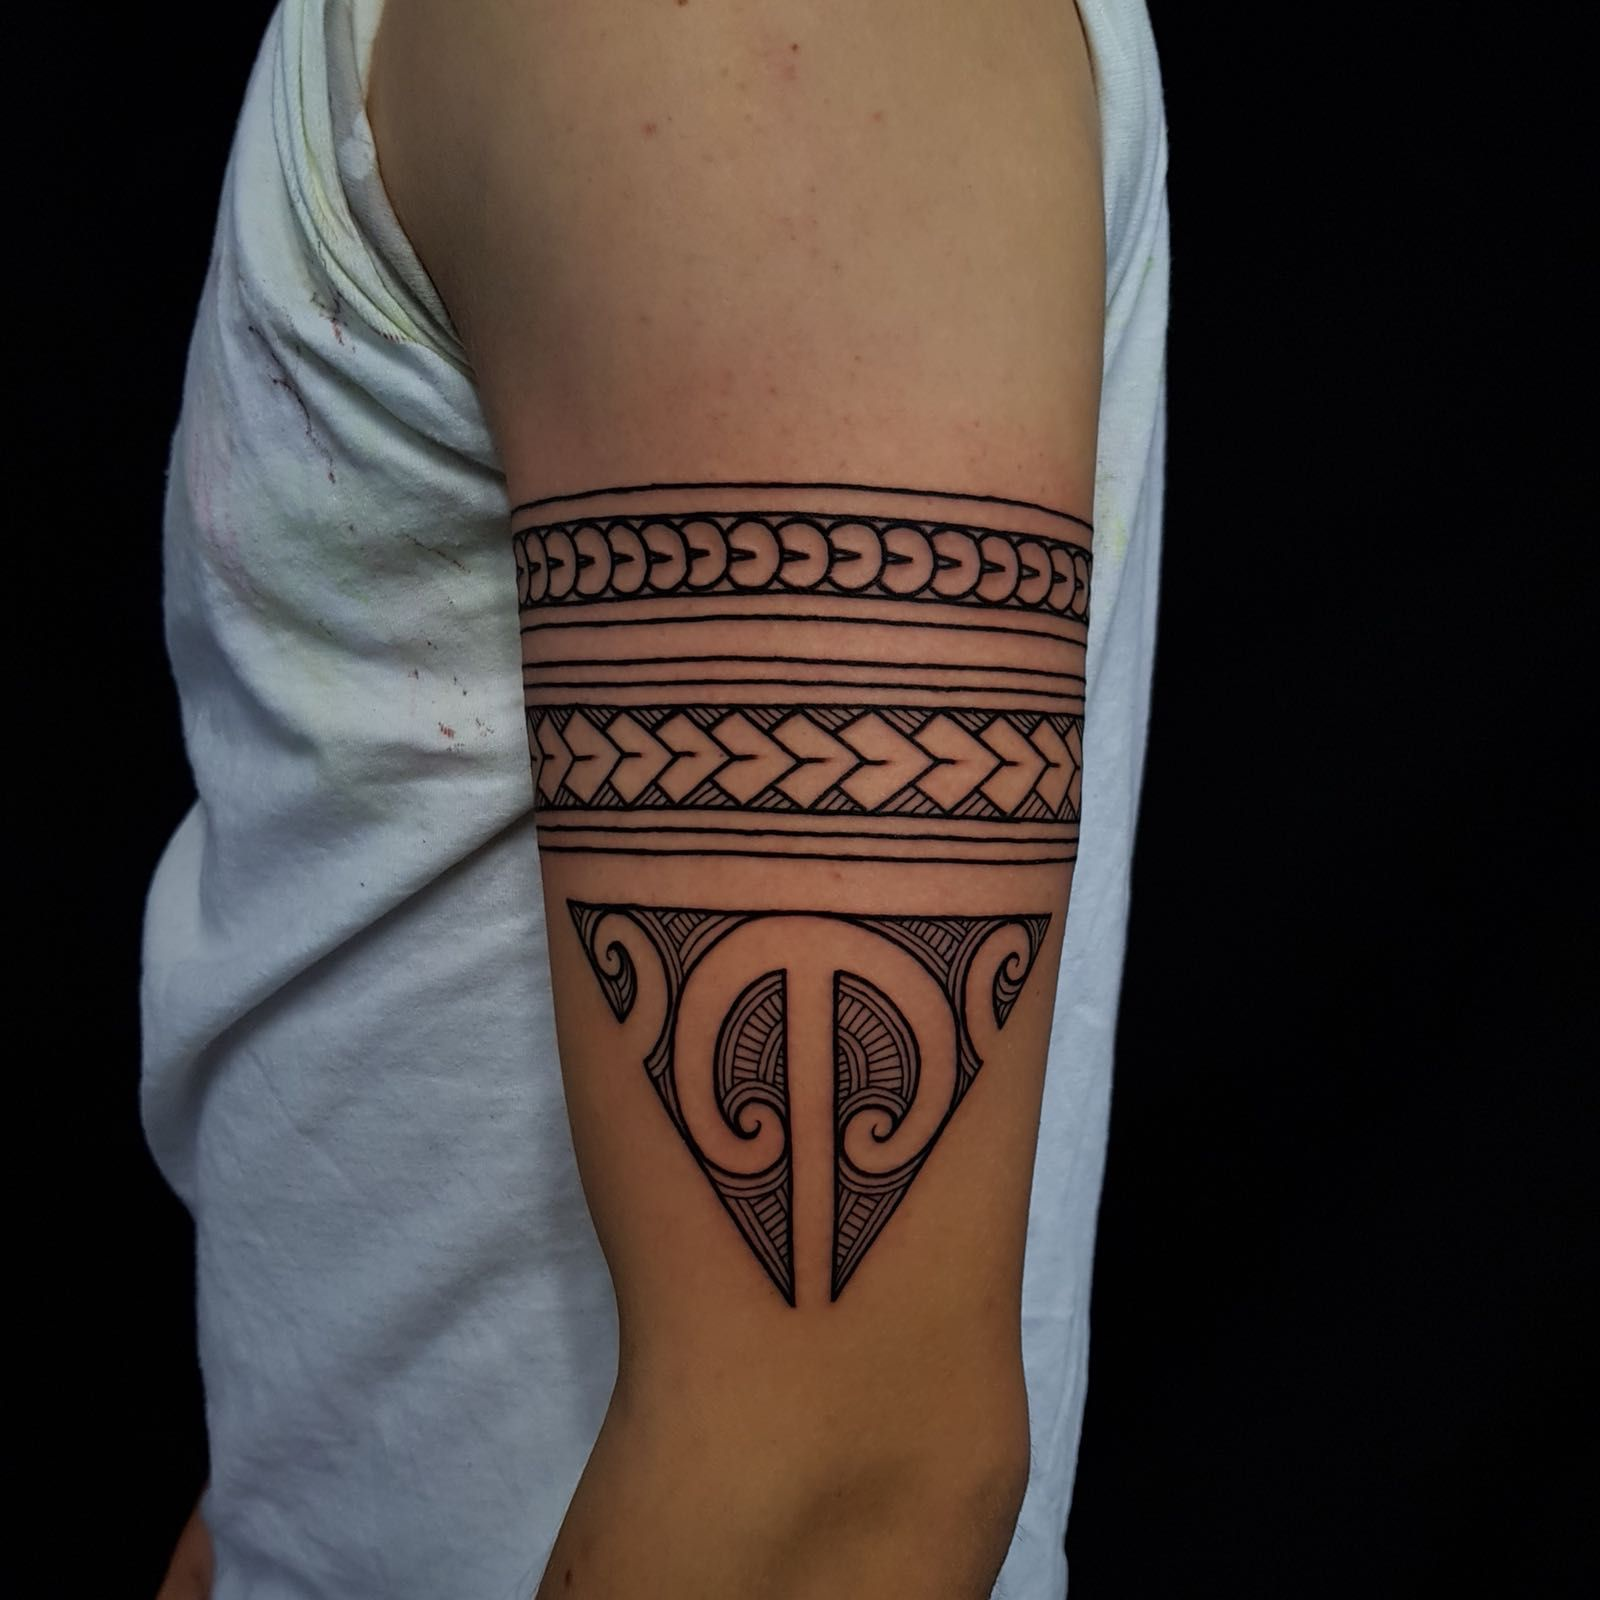 Maōri tattoo arm bands with a traditional Ta Moko triangle